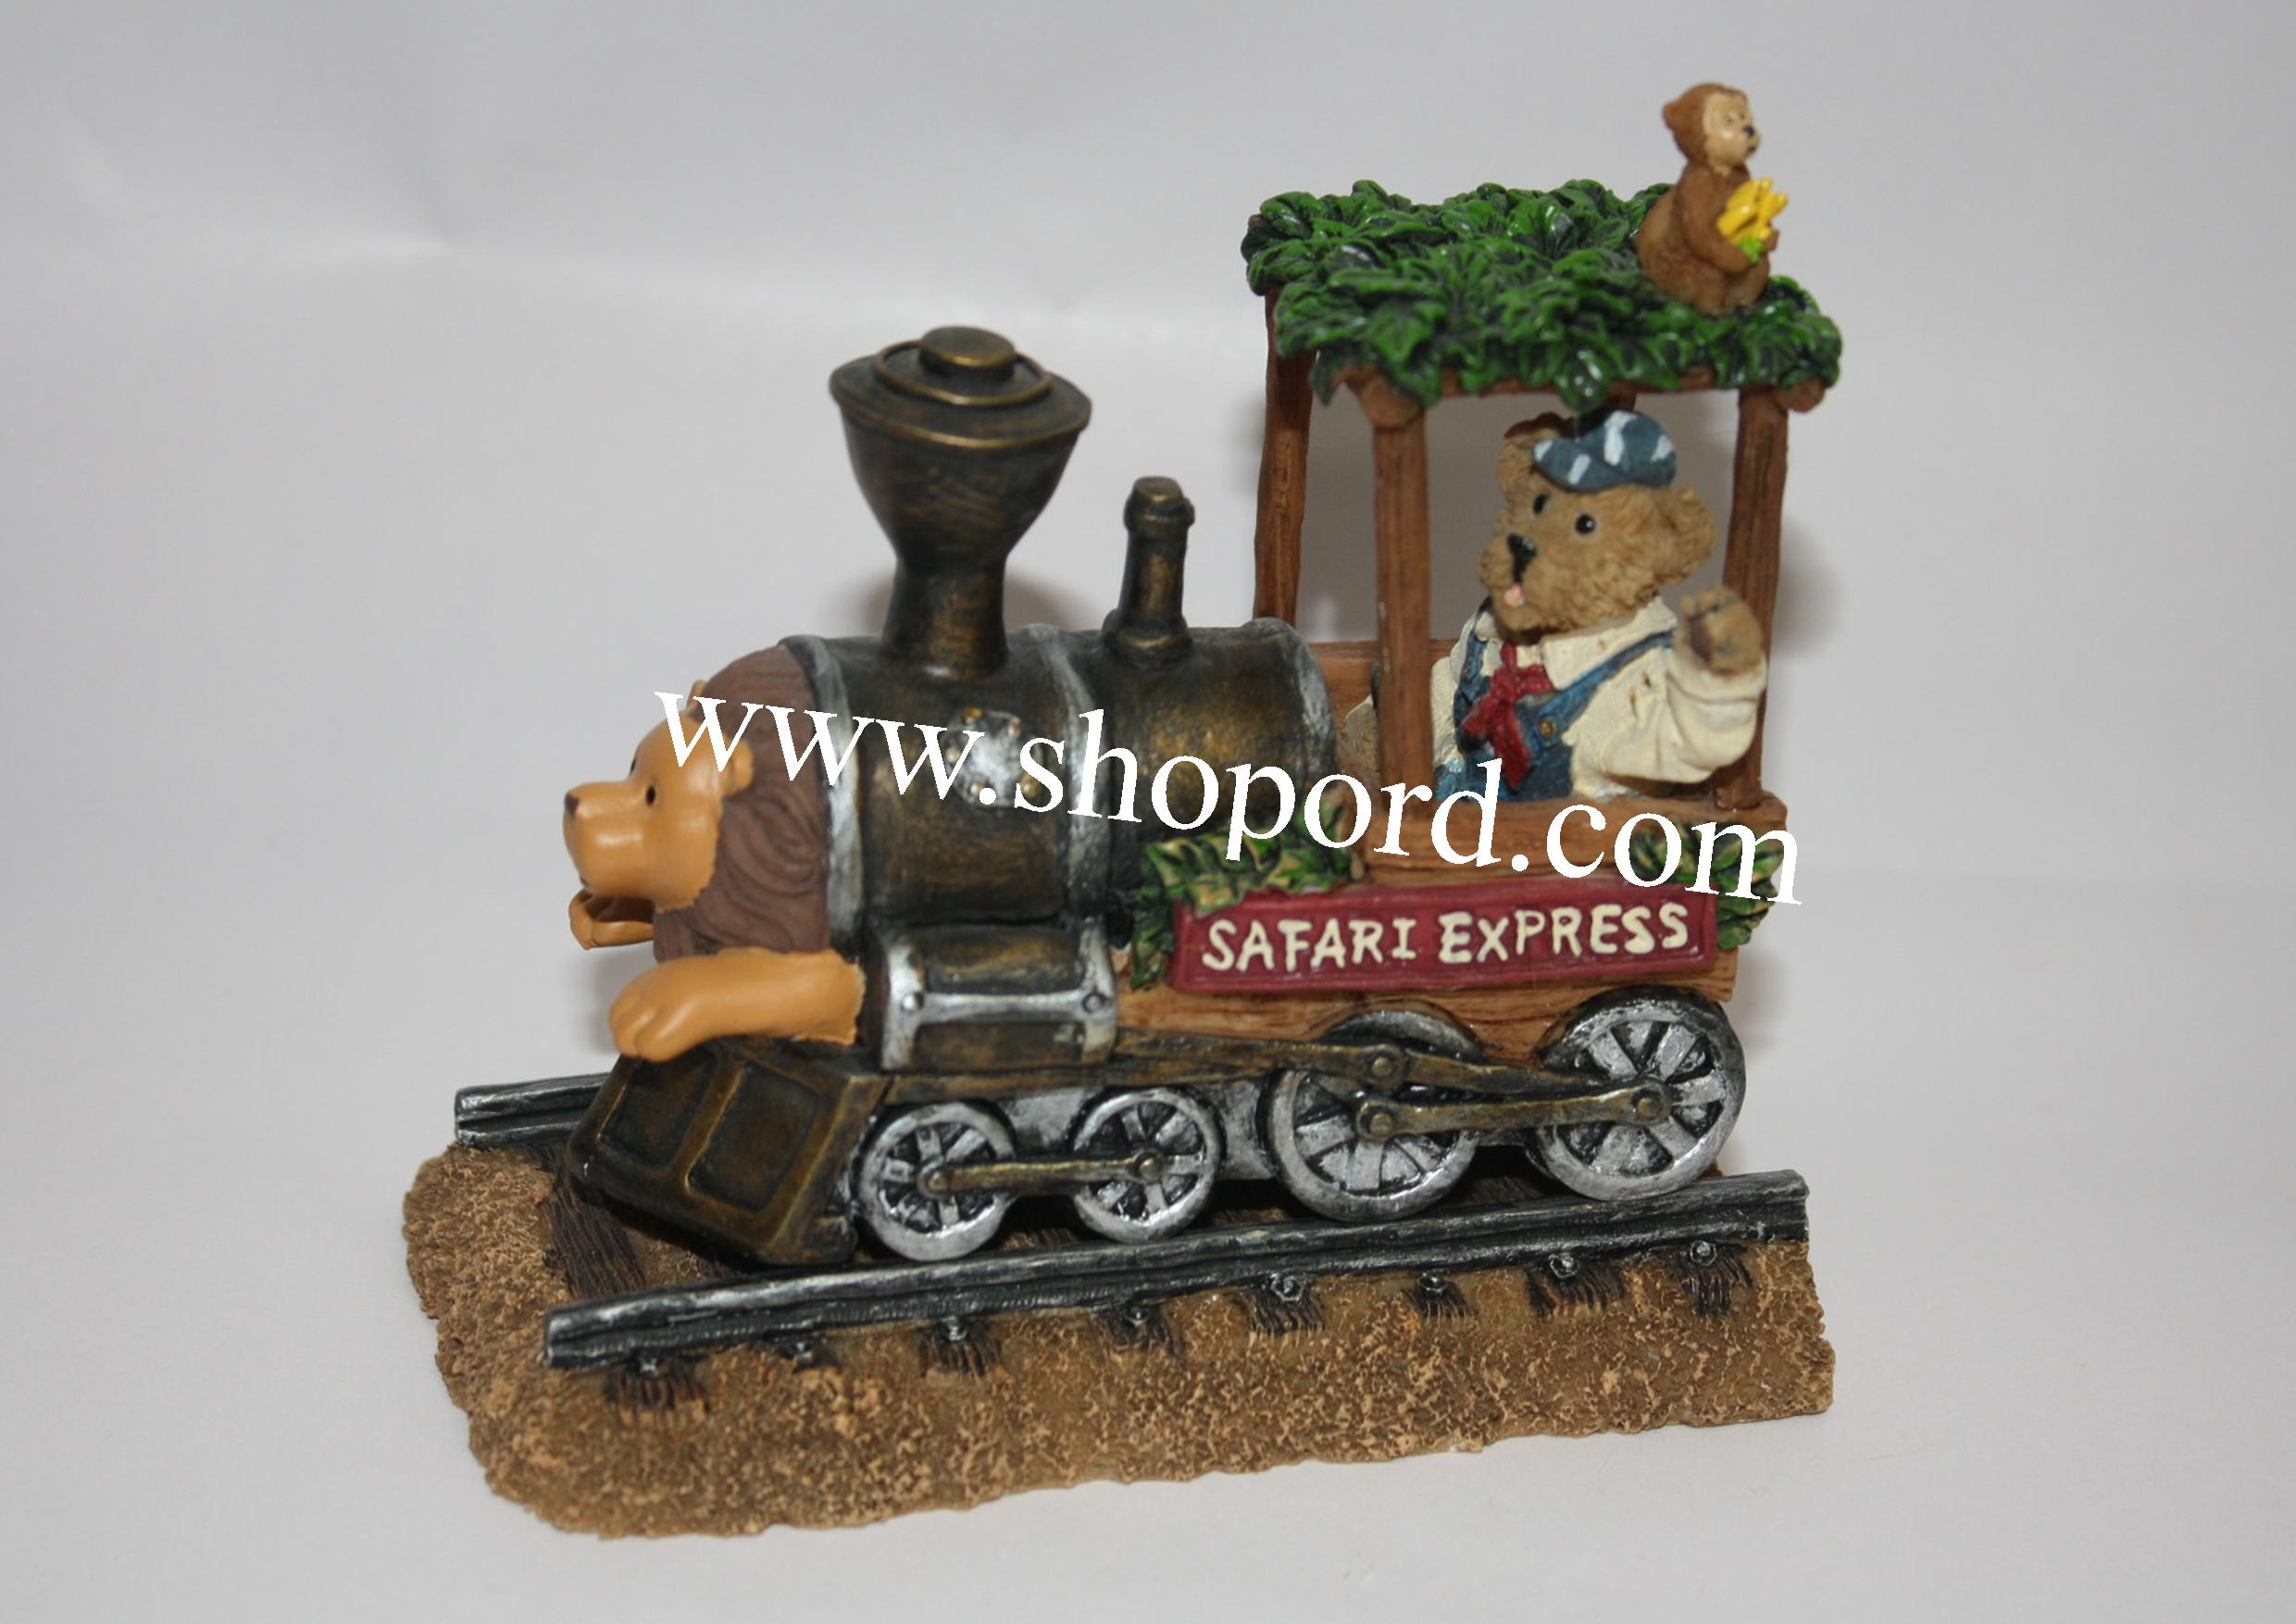 Boyds The Bearstone Collection - Ernest the Engineer and The Safari Express Locomotive (All Aboard!) #4015180